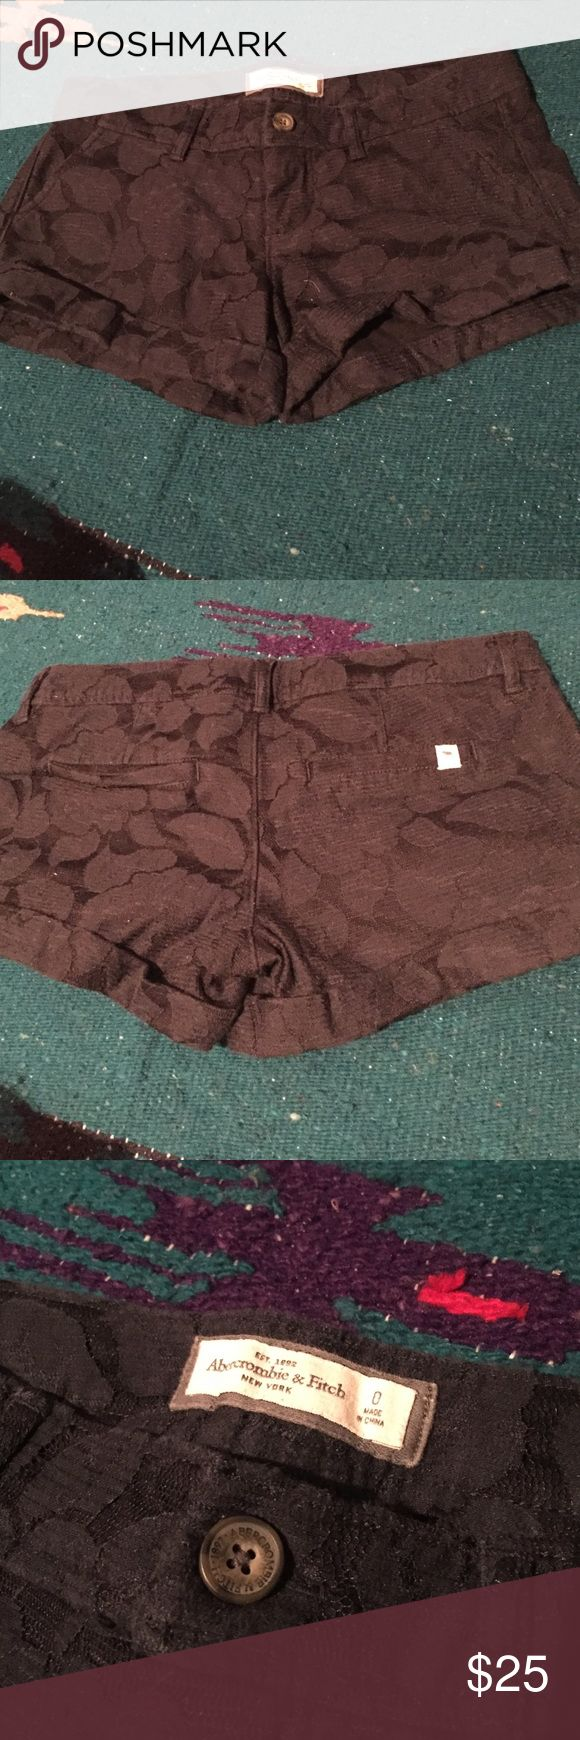 Abercrombie & Fitch navy blue shorts; size 0 Abercrombie & Fitch navy blue floral shorts; size 0 Abercrombie & Fitch Shorts